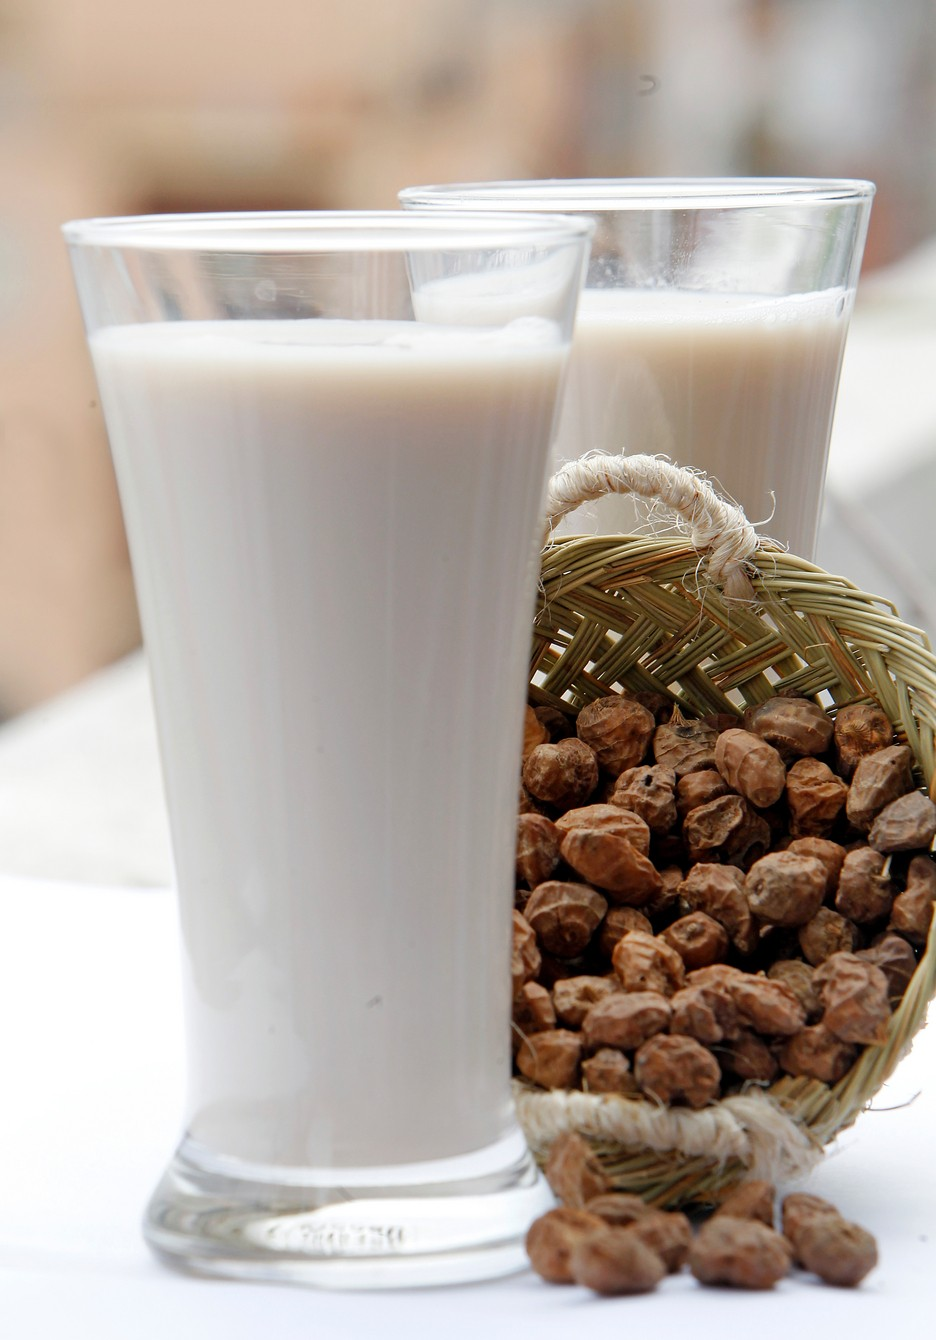 The best orxata (horchata) parlours in Valencia